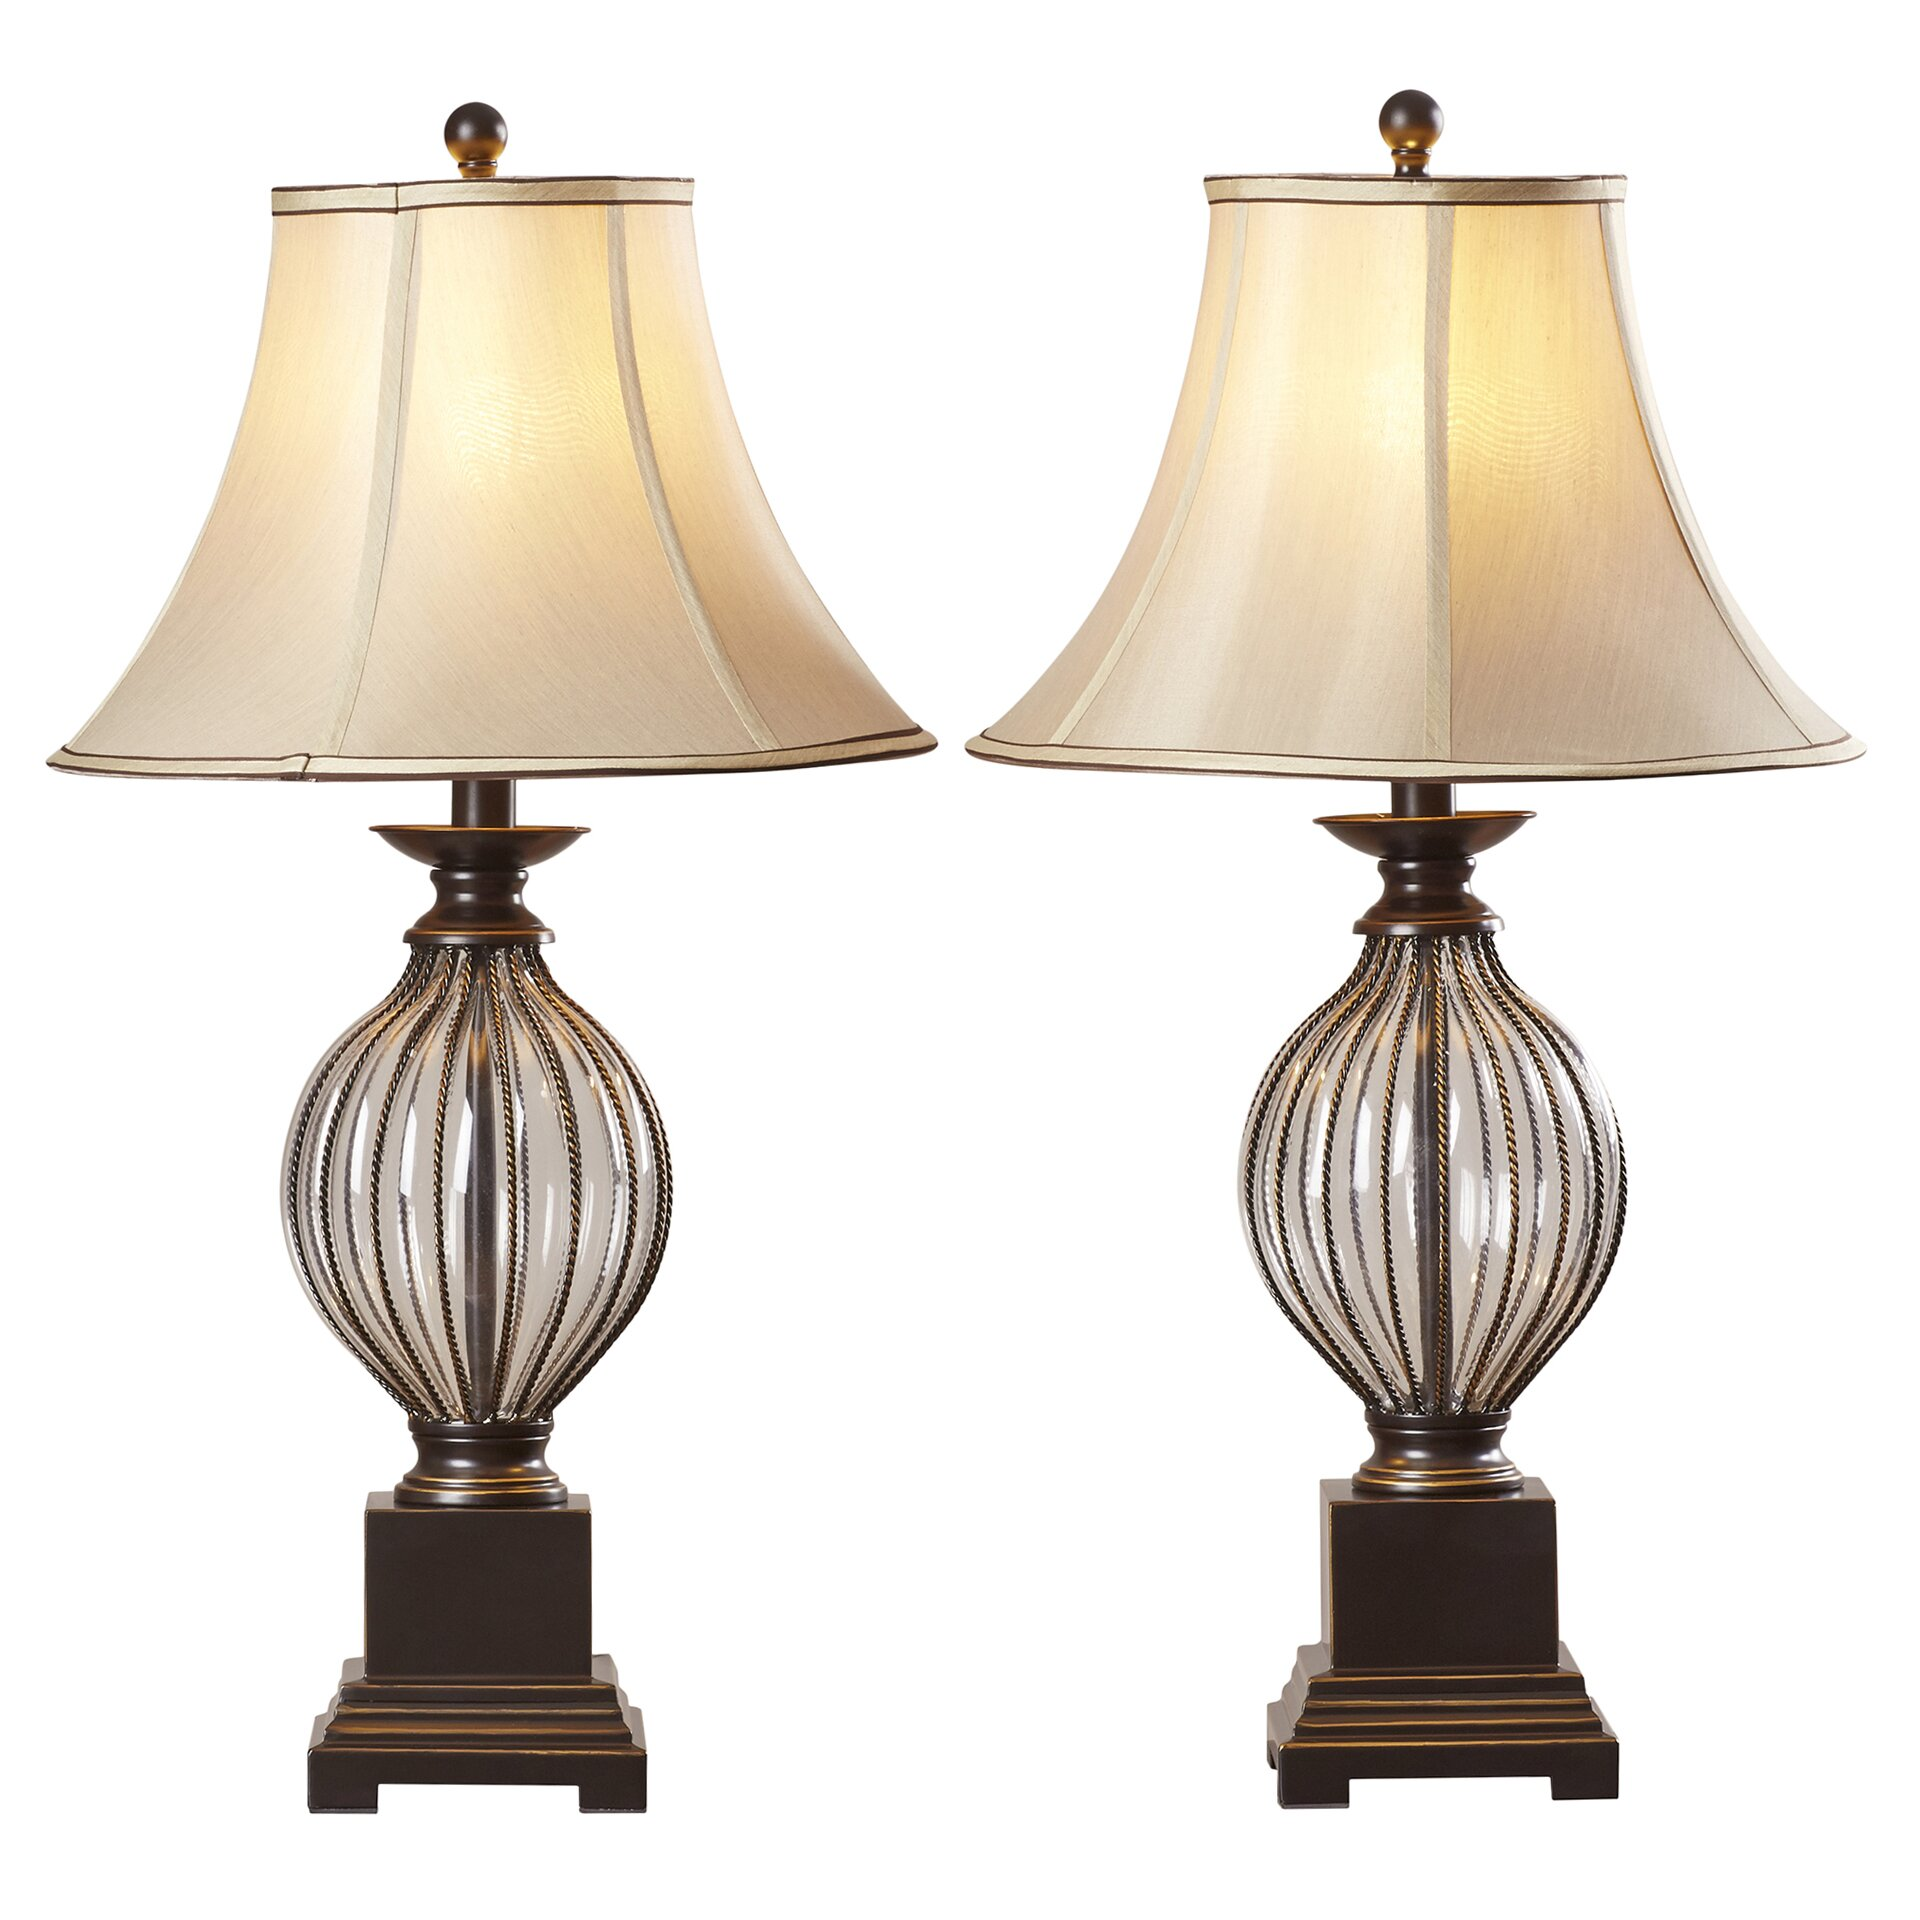 alcott hill ontario 31 h table lamp with bell shade. Black Bedroom Furniture Sets. Home Design Ideas